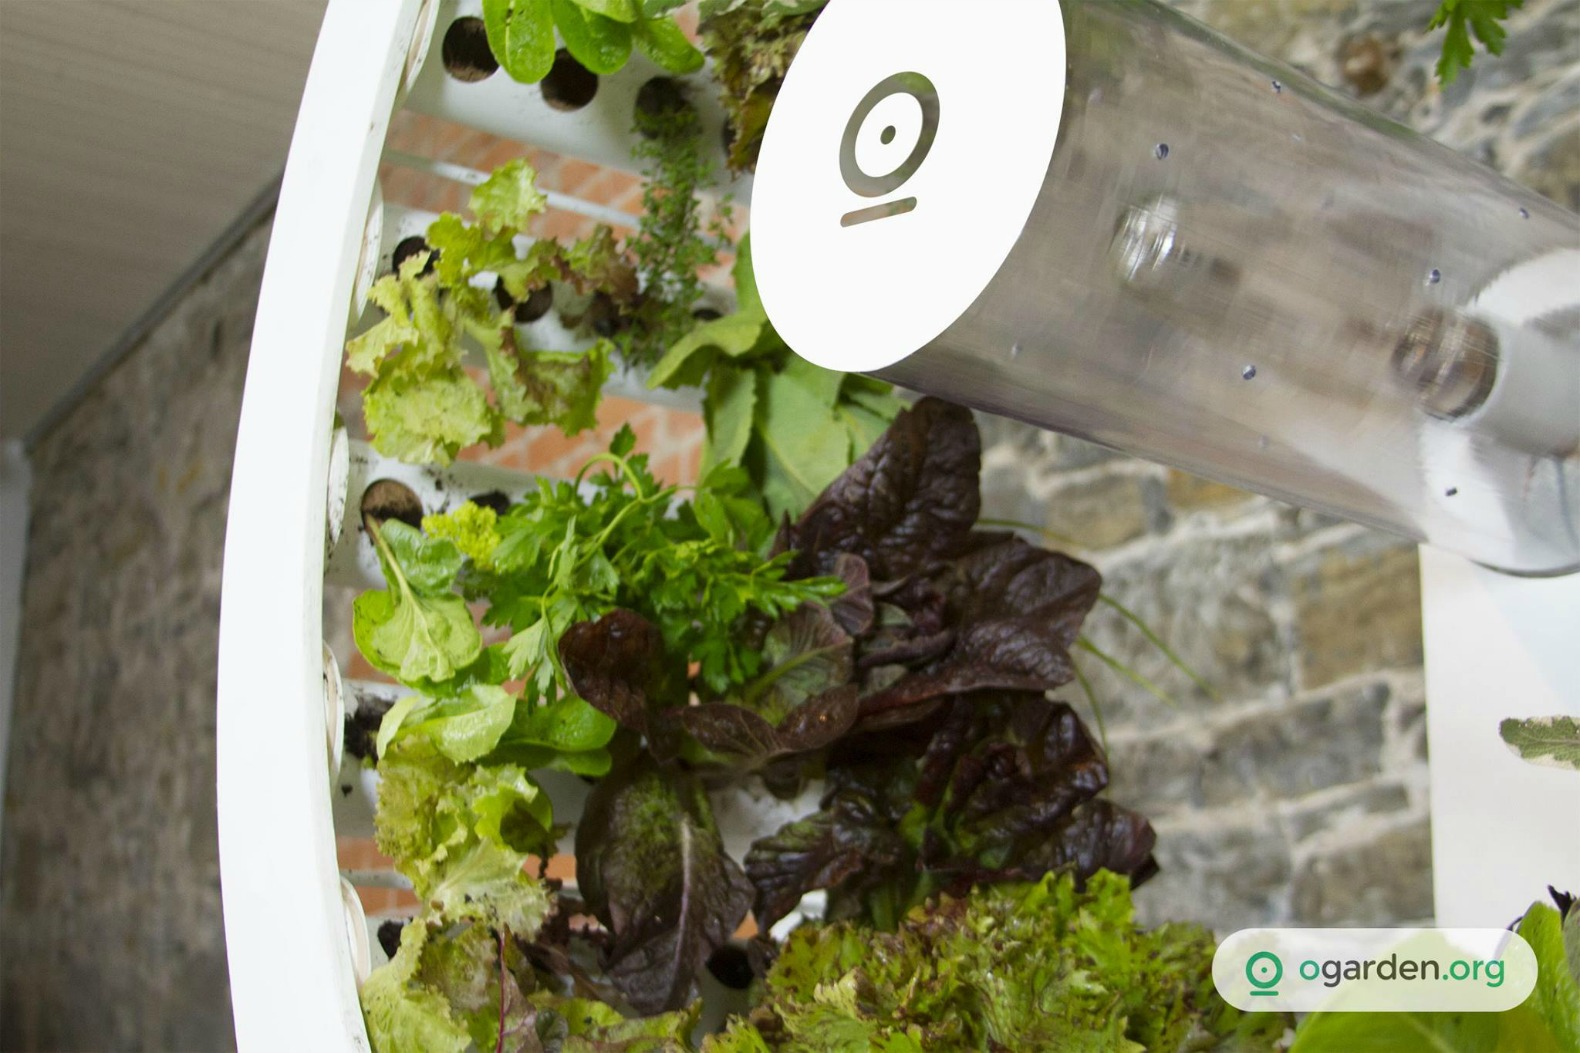 ogarden indoor farm indoor gardens home gardens indoor farms home growing